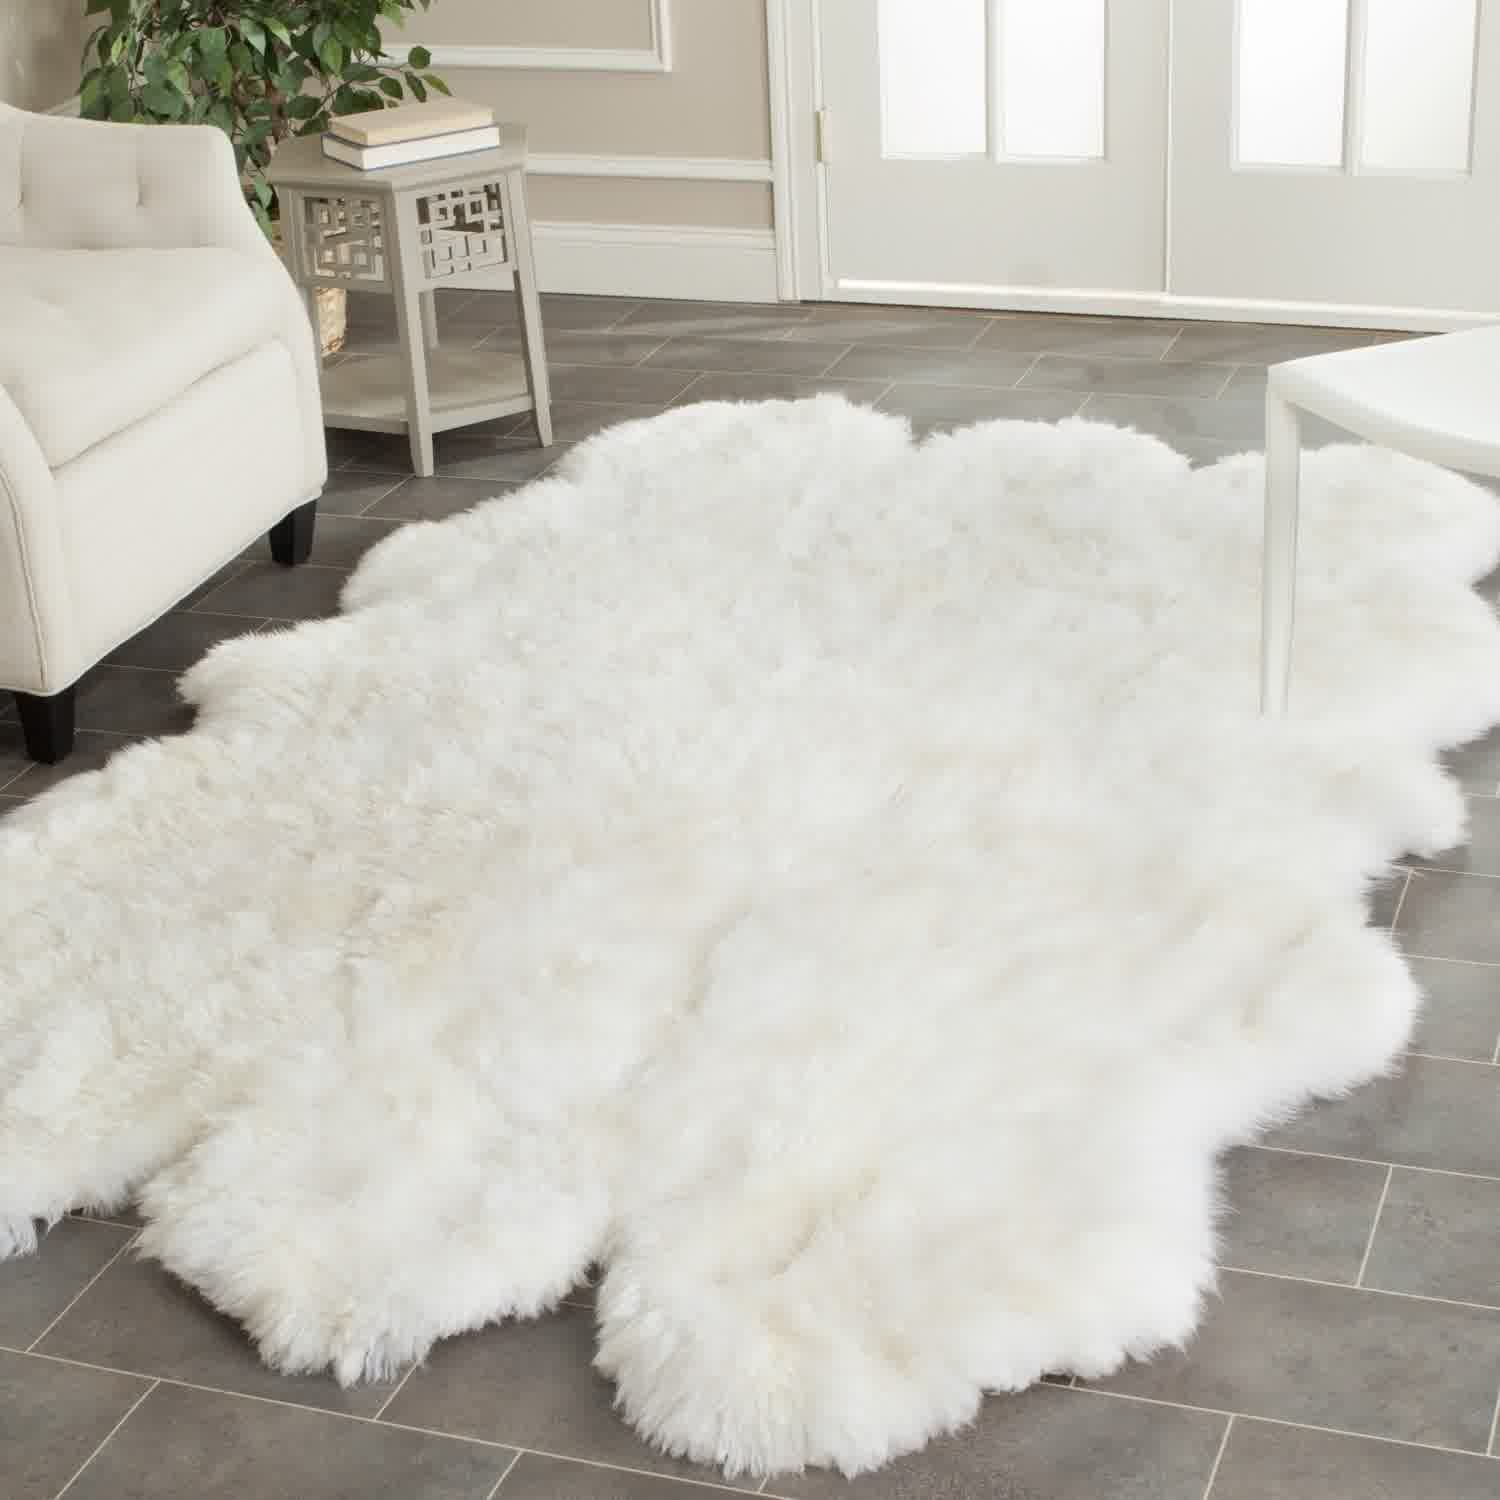 Depiction Of Fluffy White Rug A Small Floor Feature For Ultimate Beauty And Comfort White Shag Rug Faux Sheepskin Rug White Rug